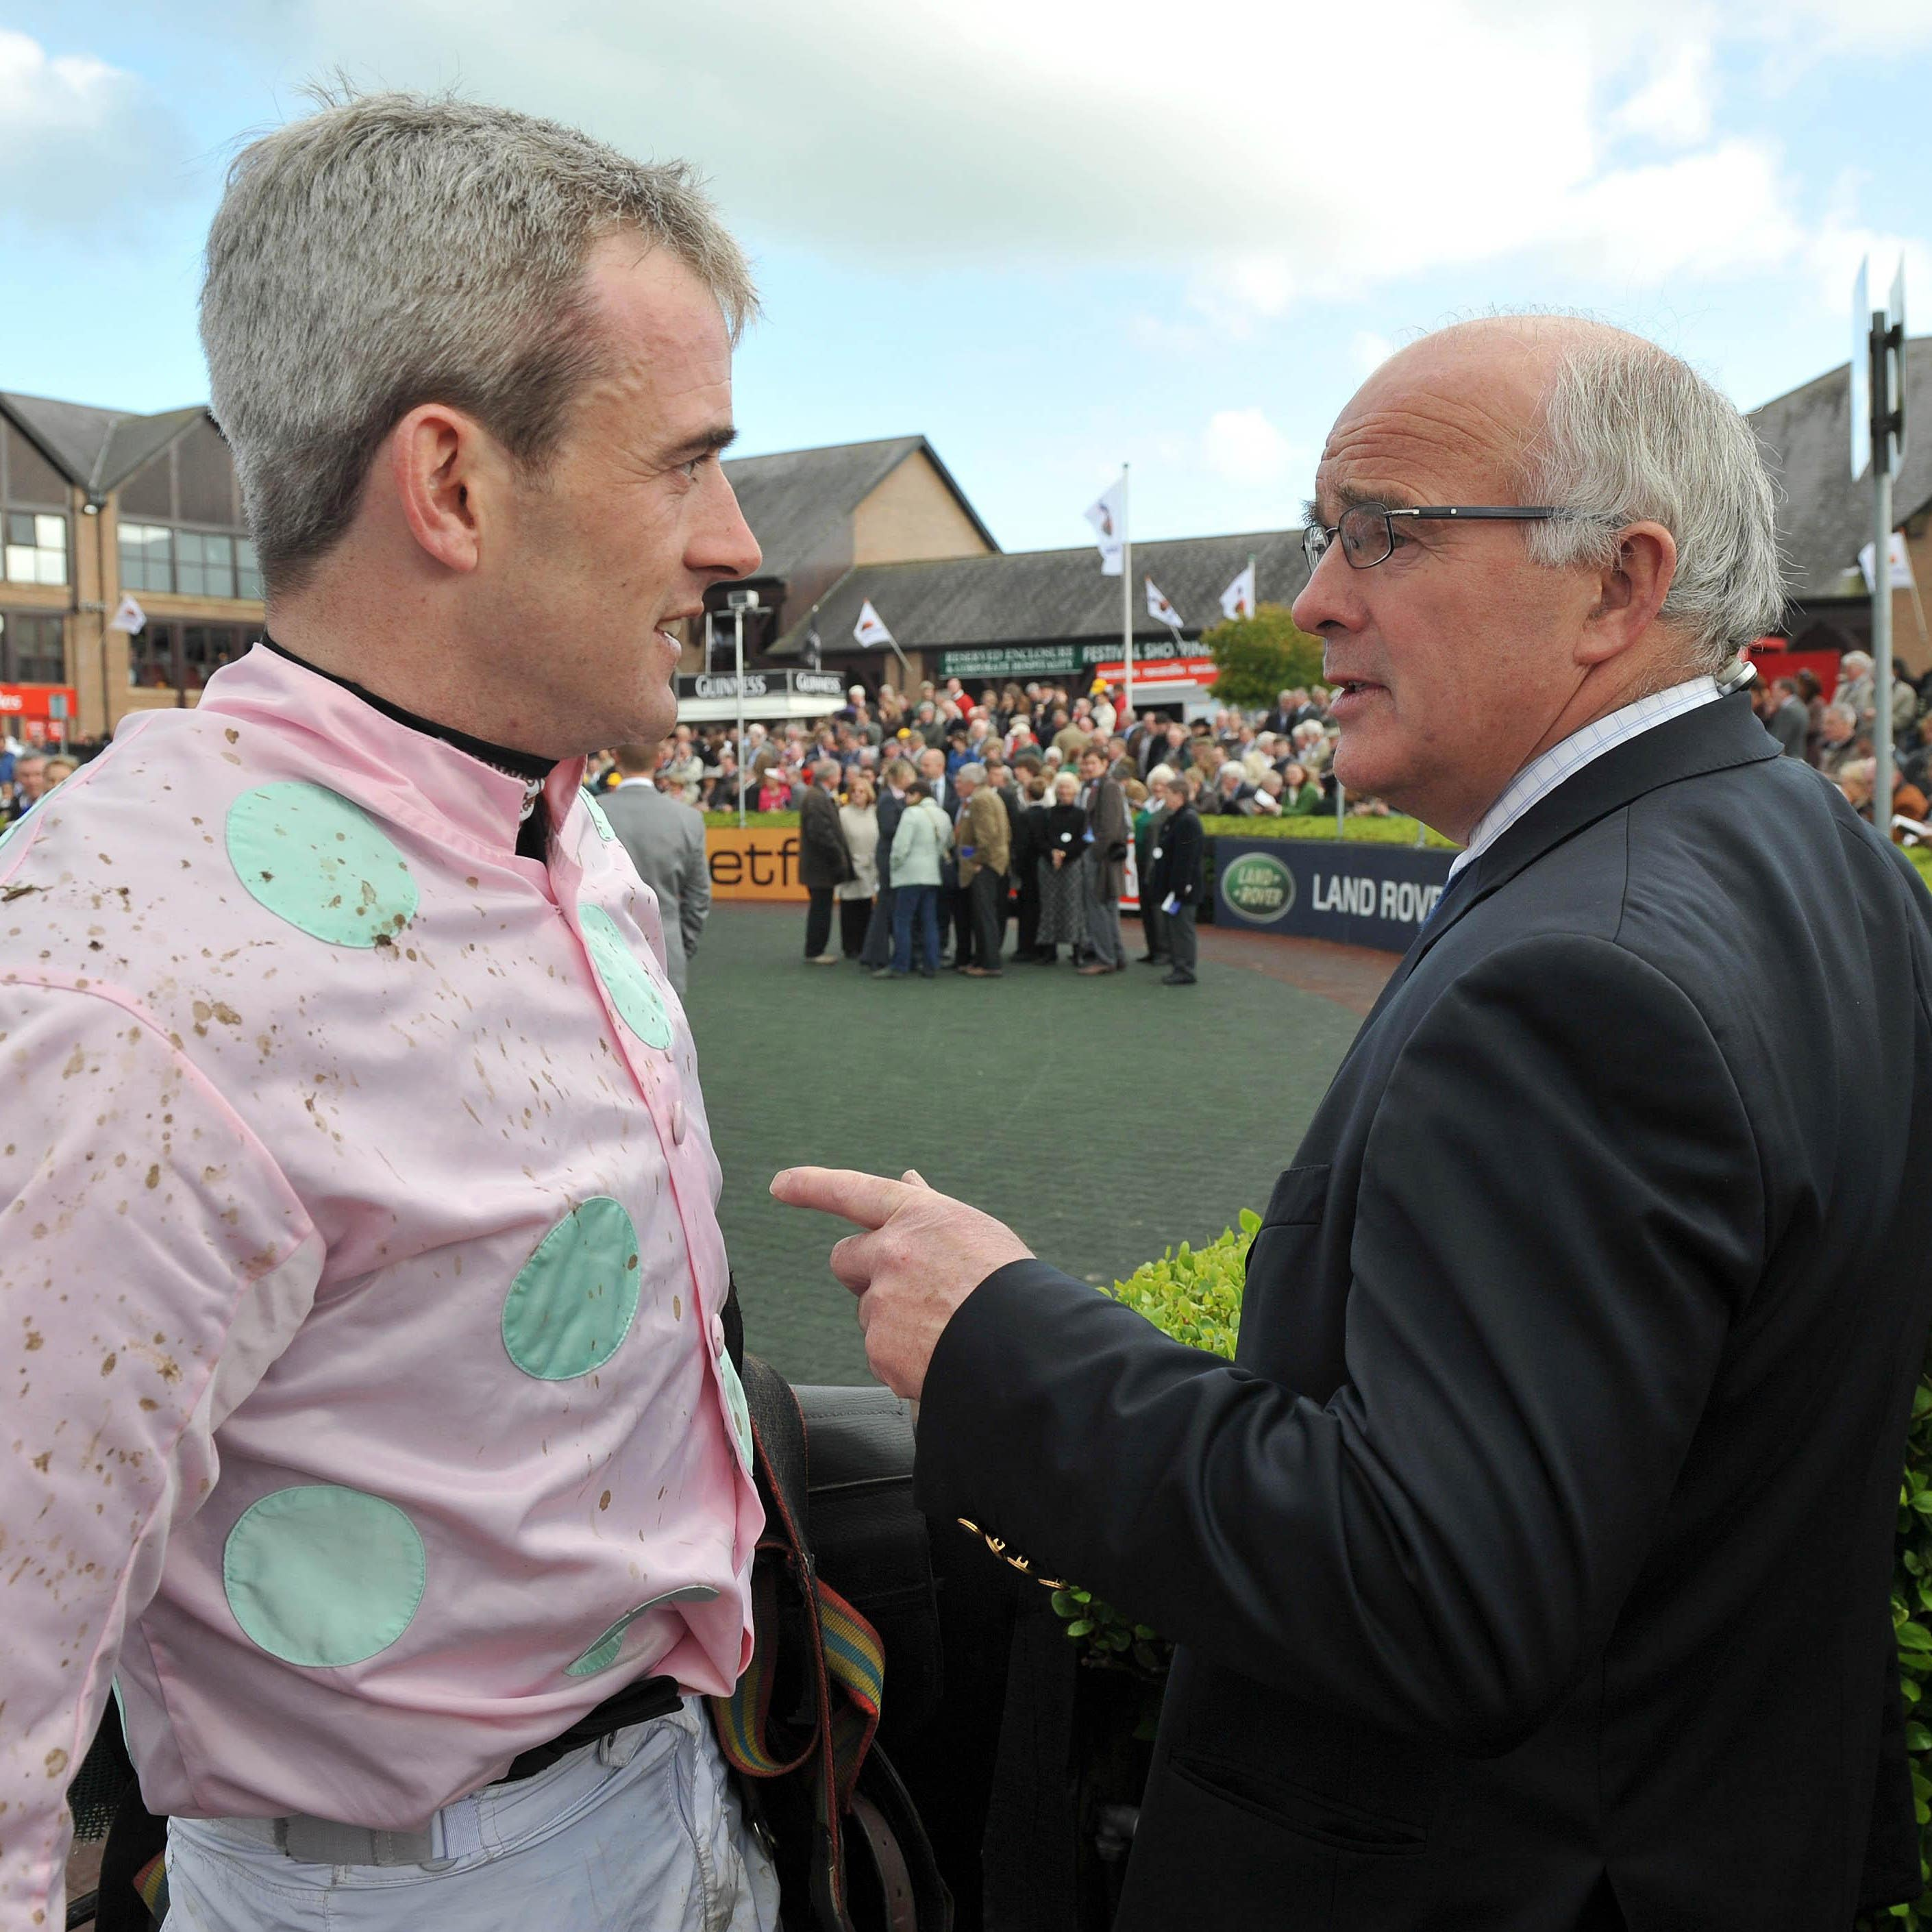 Ruby and Ted Walsh team up at Naas